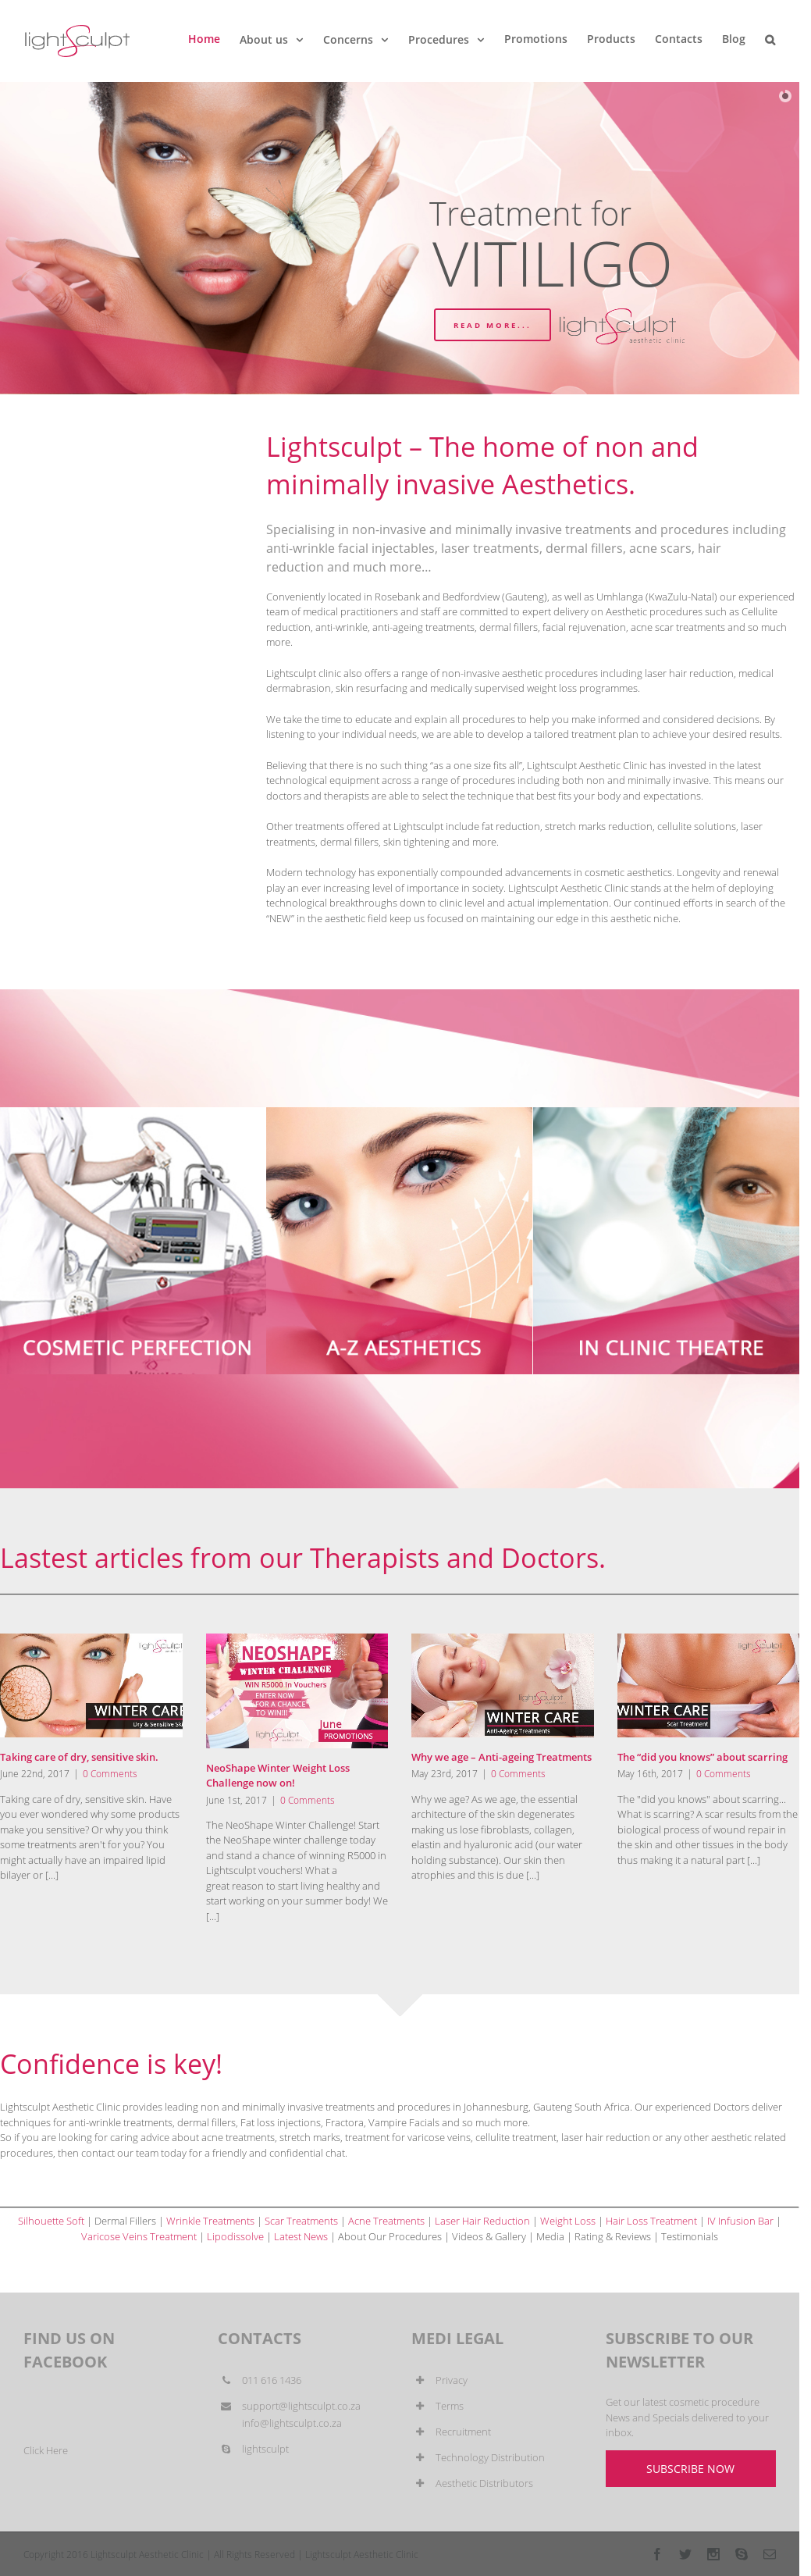 Lightsculpt Aesthetic Clinic Competitors, Revenue and Employees